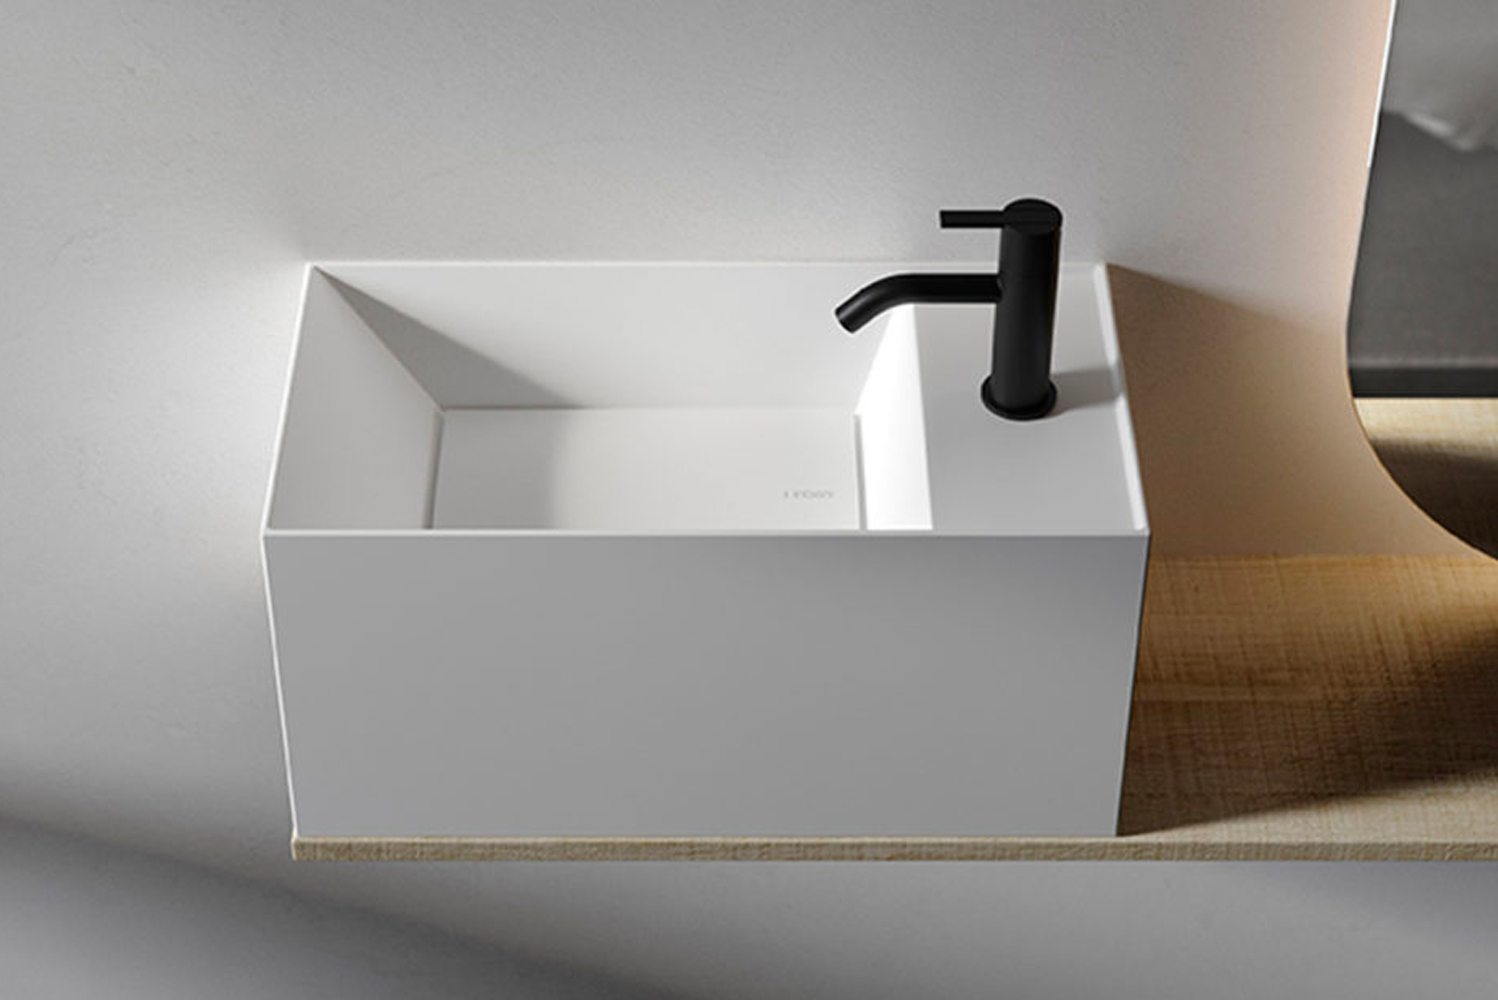 It can be installed independently as a washbasin or combined with other designs, such as units, shelves or mirrors.